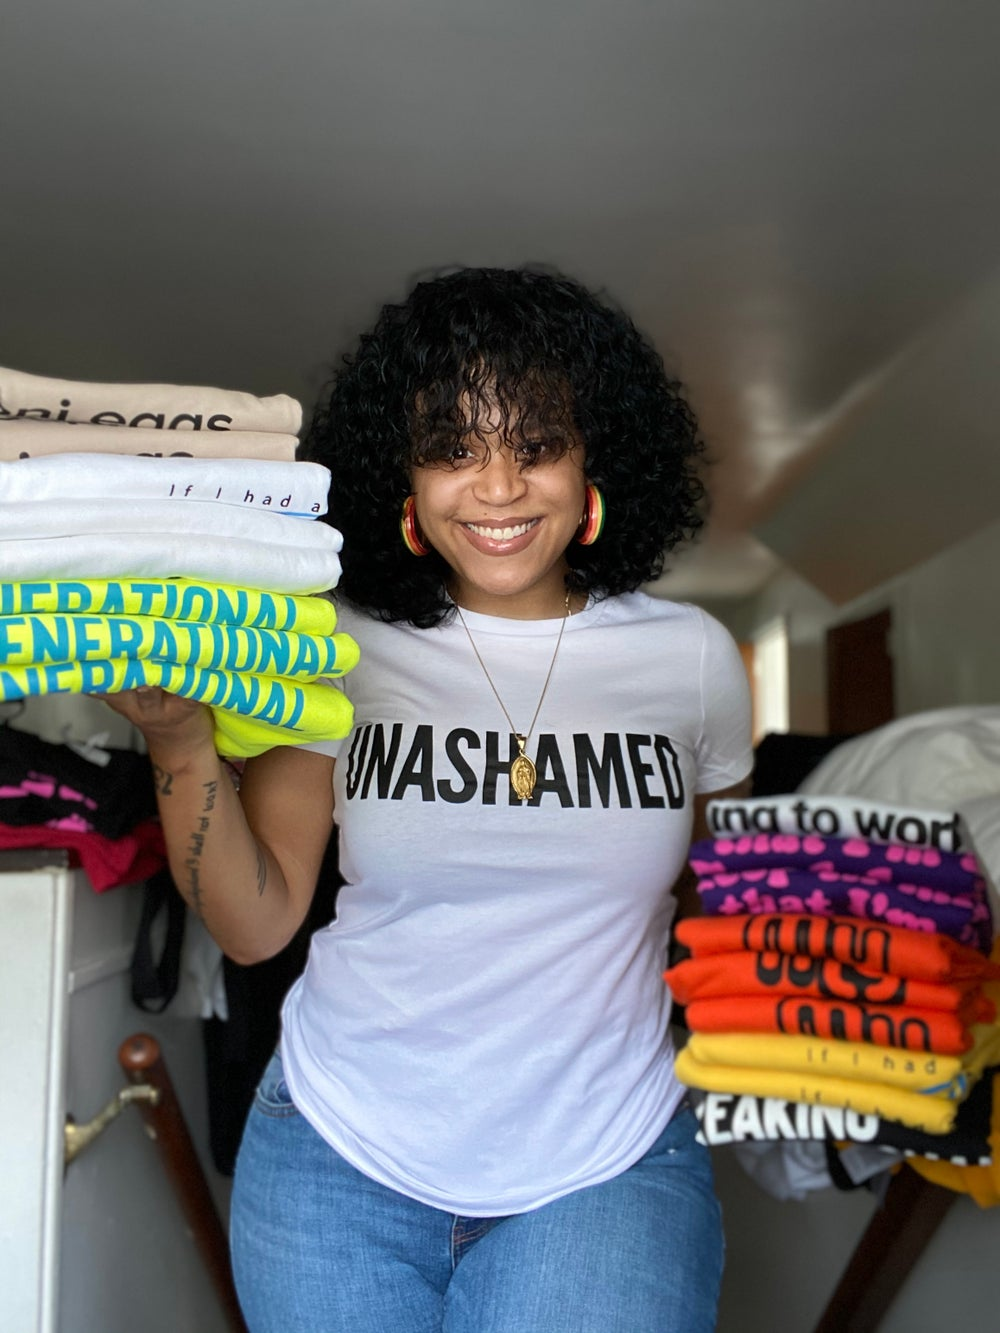 The Unashamed Tee in White and Black